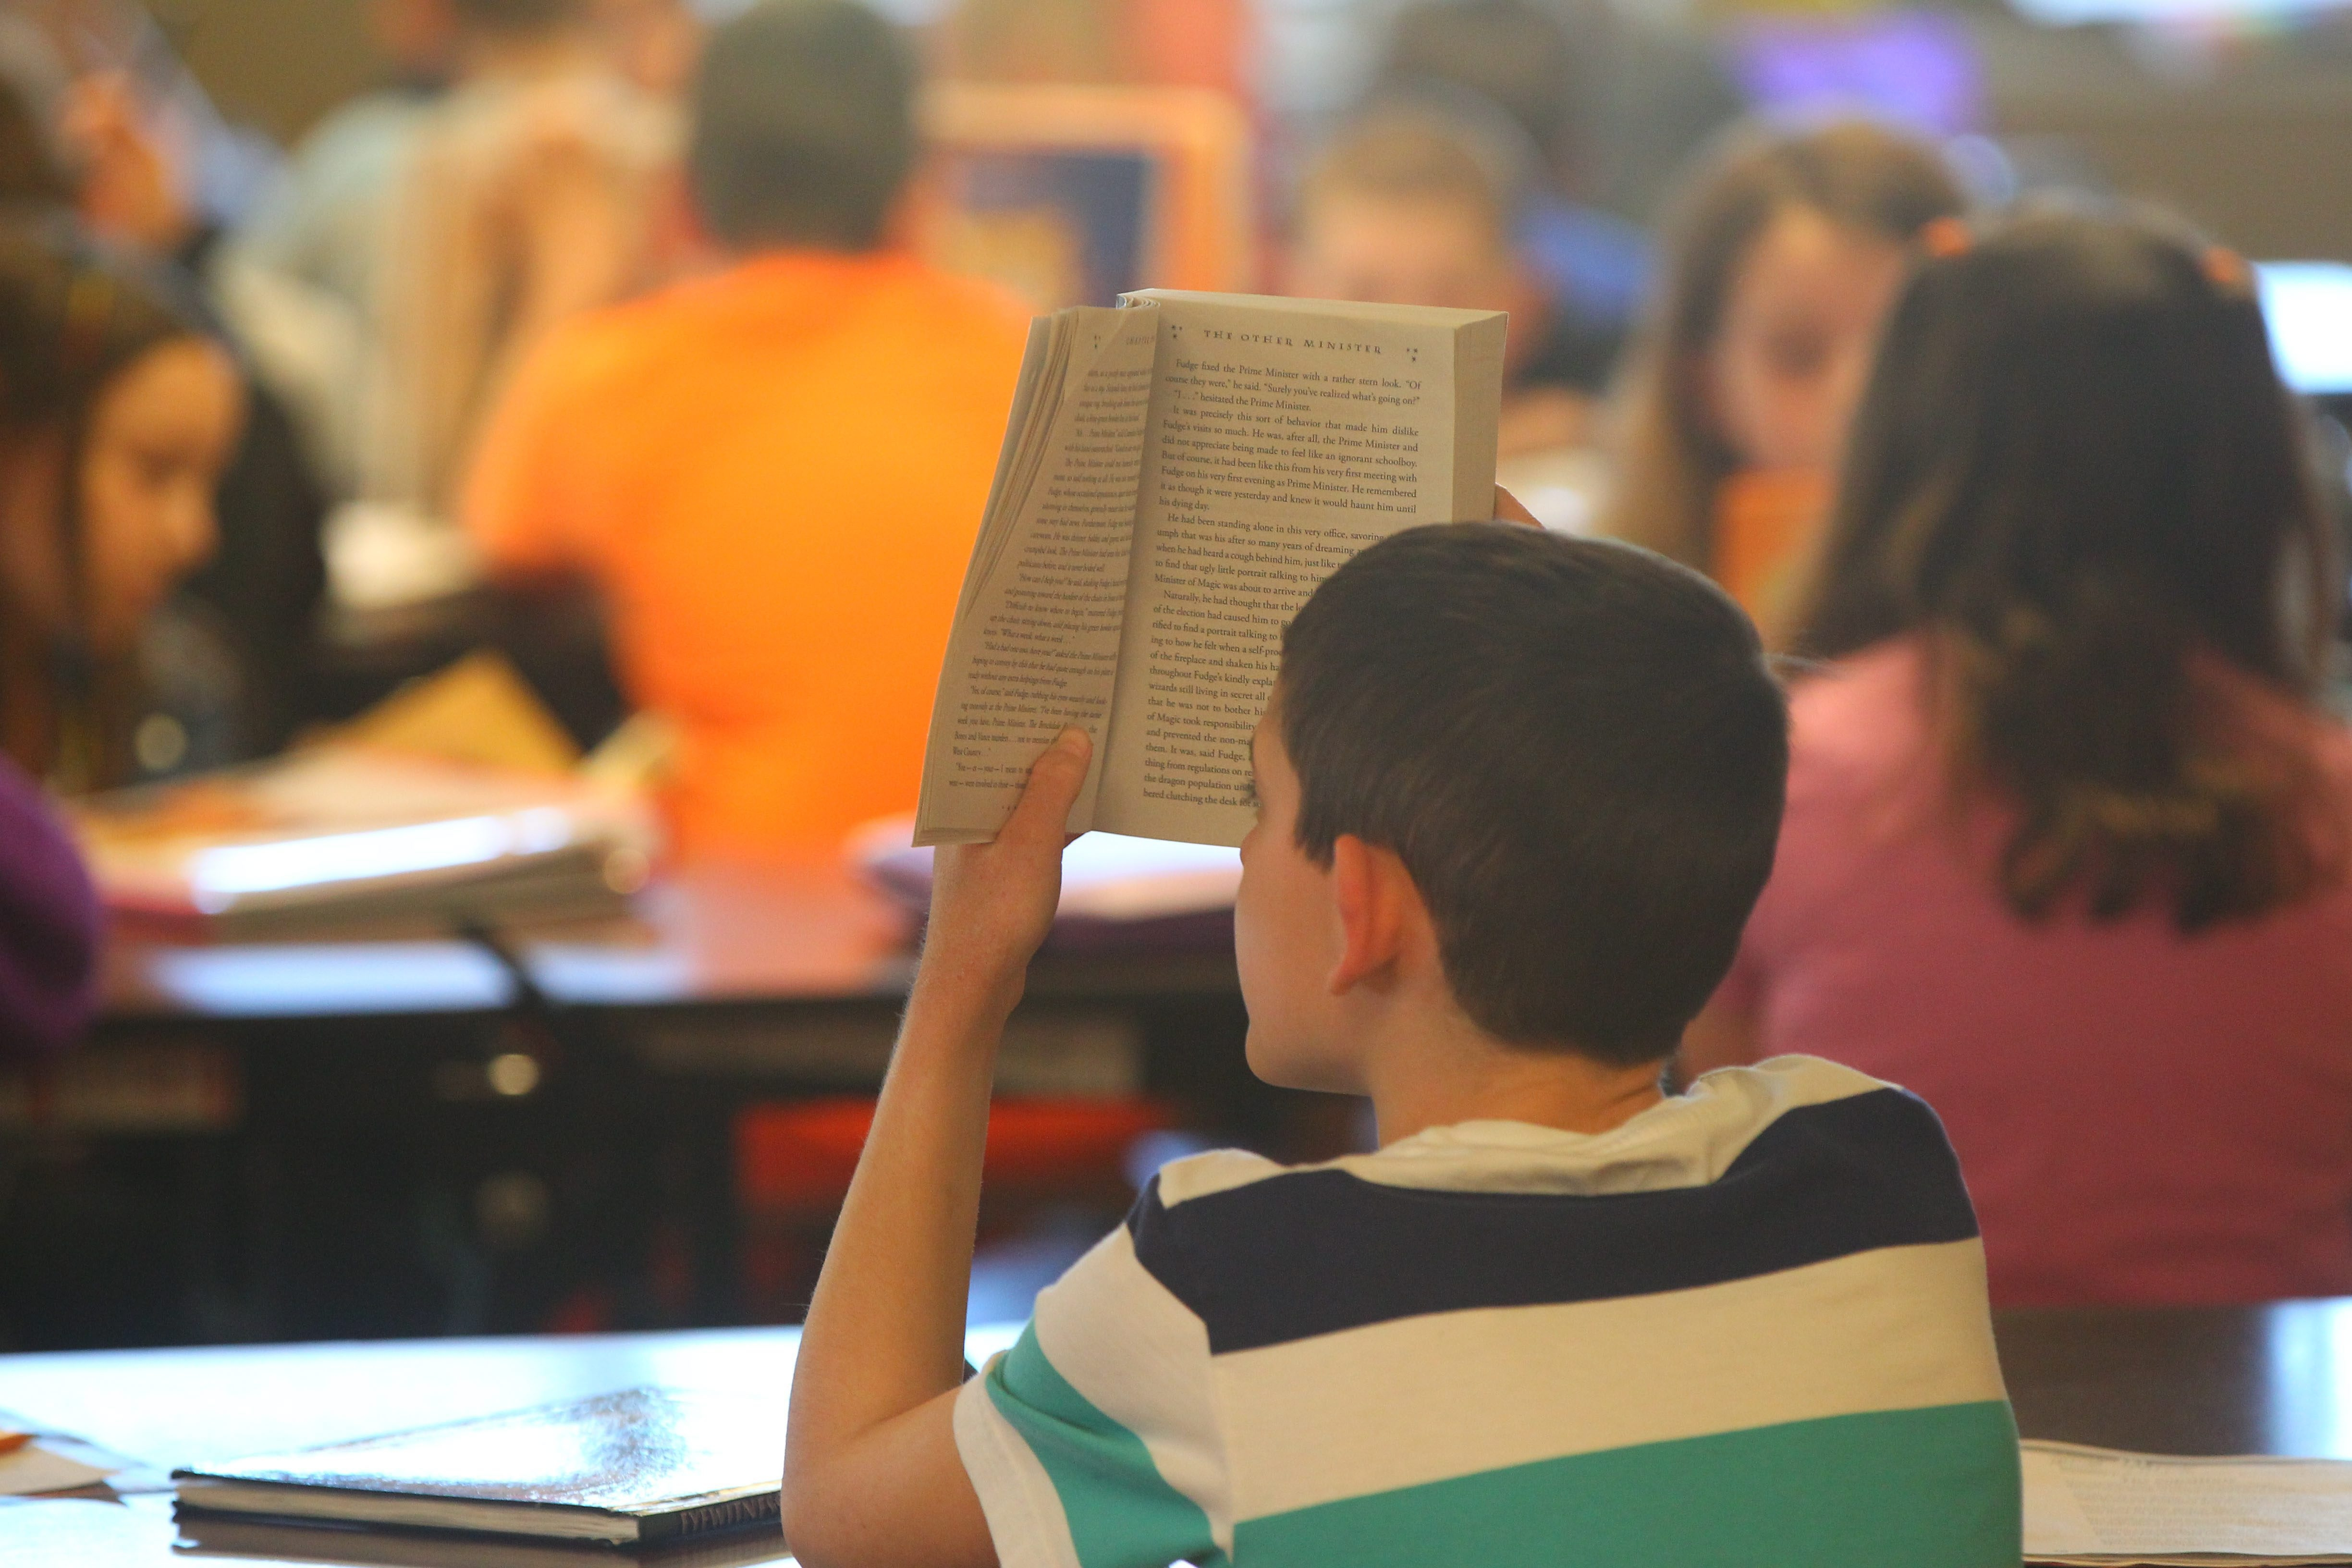 The scene at a West Seneca elementary school last year where children whose parents opted out of state testing read in the library during the tests. (Buffalo news file photo)